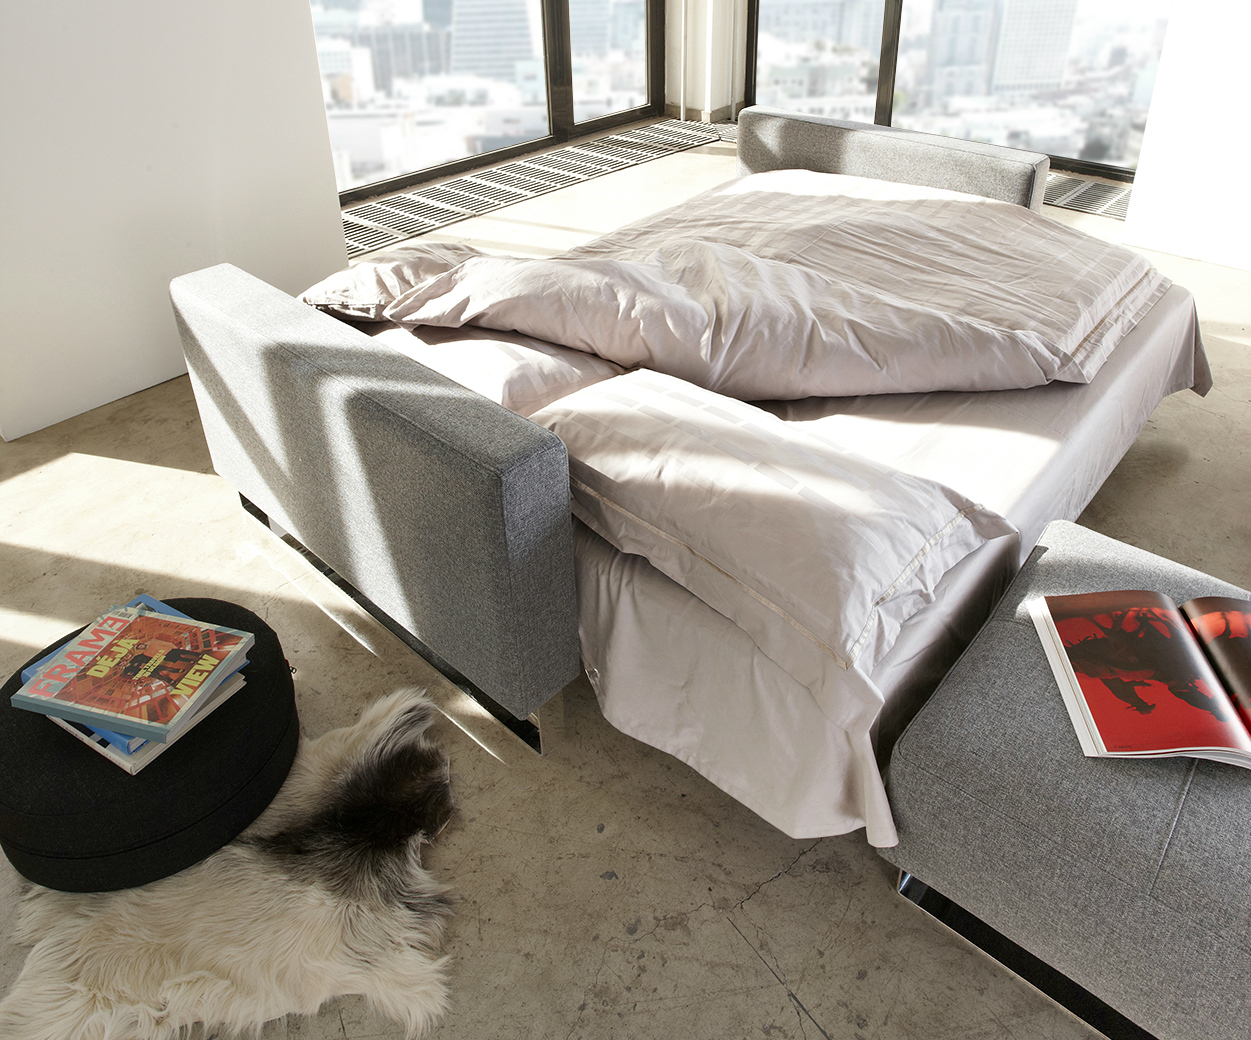 Bedroom Sofa Bed Melbourne Cassius Excess Queen Sofa Bed - Innovation Living Melbourne